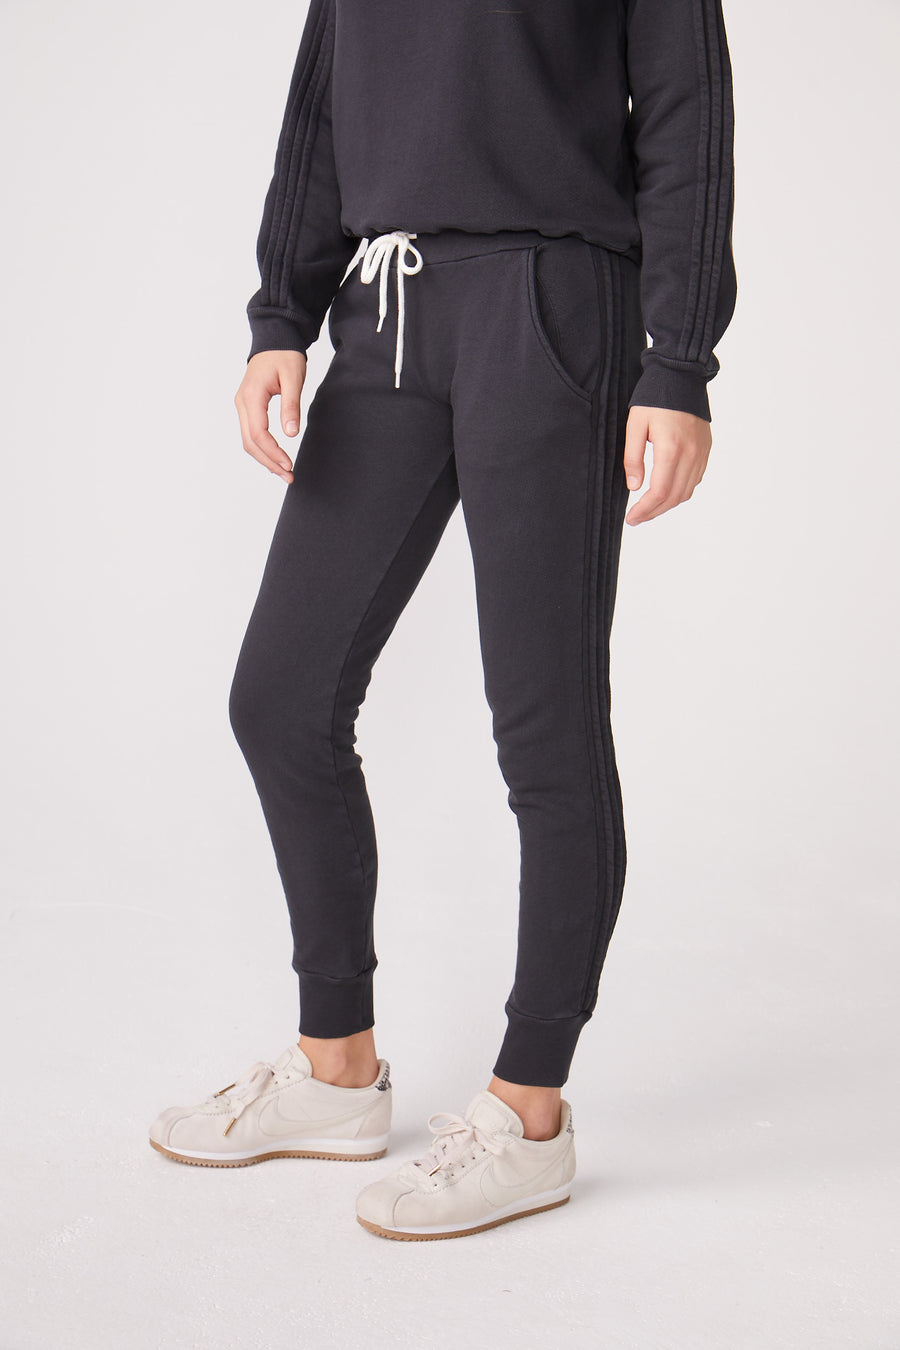 Monrow Pintuck Sporty Sweatpants